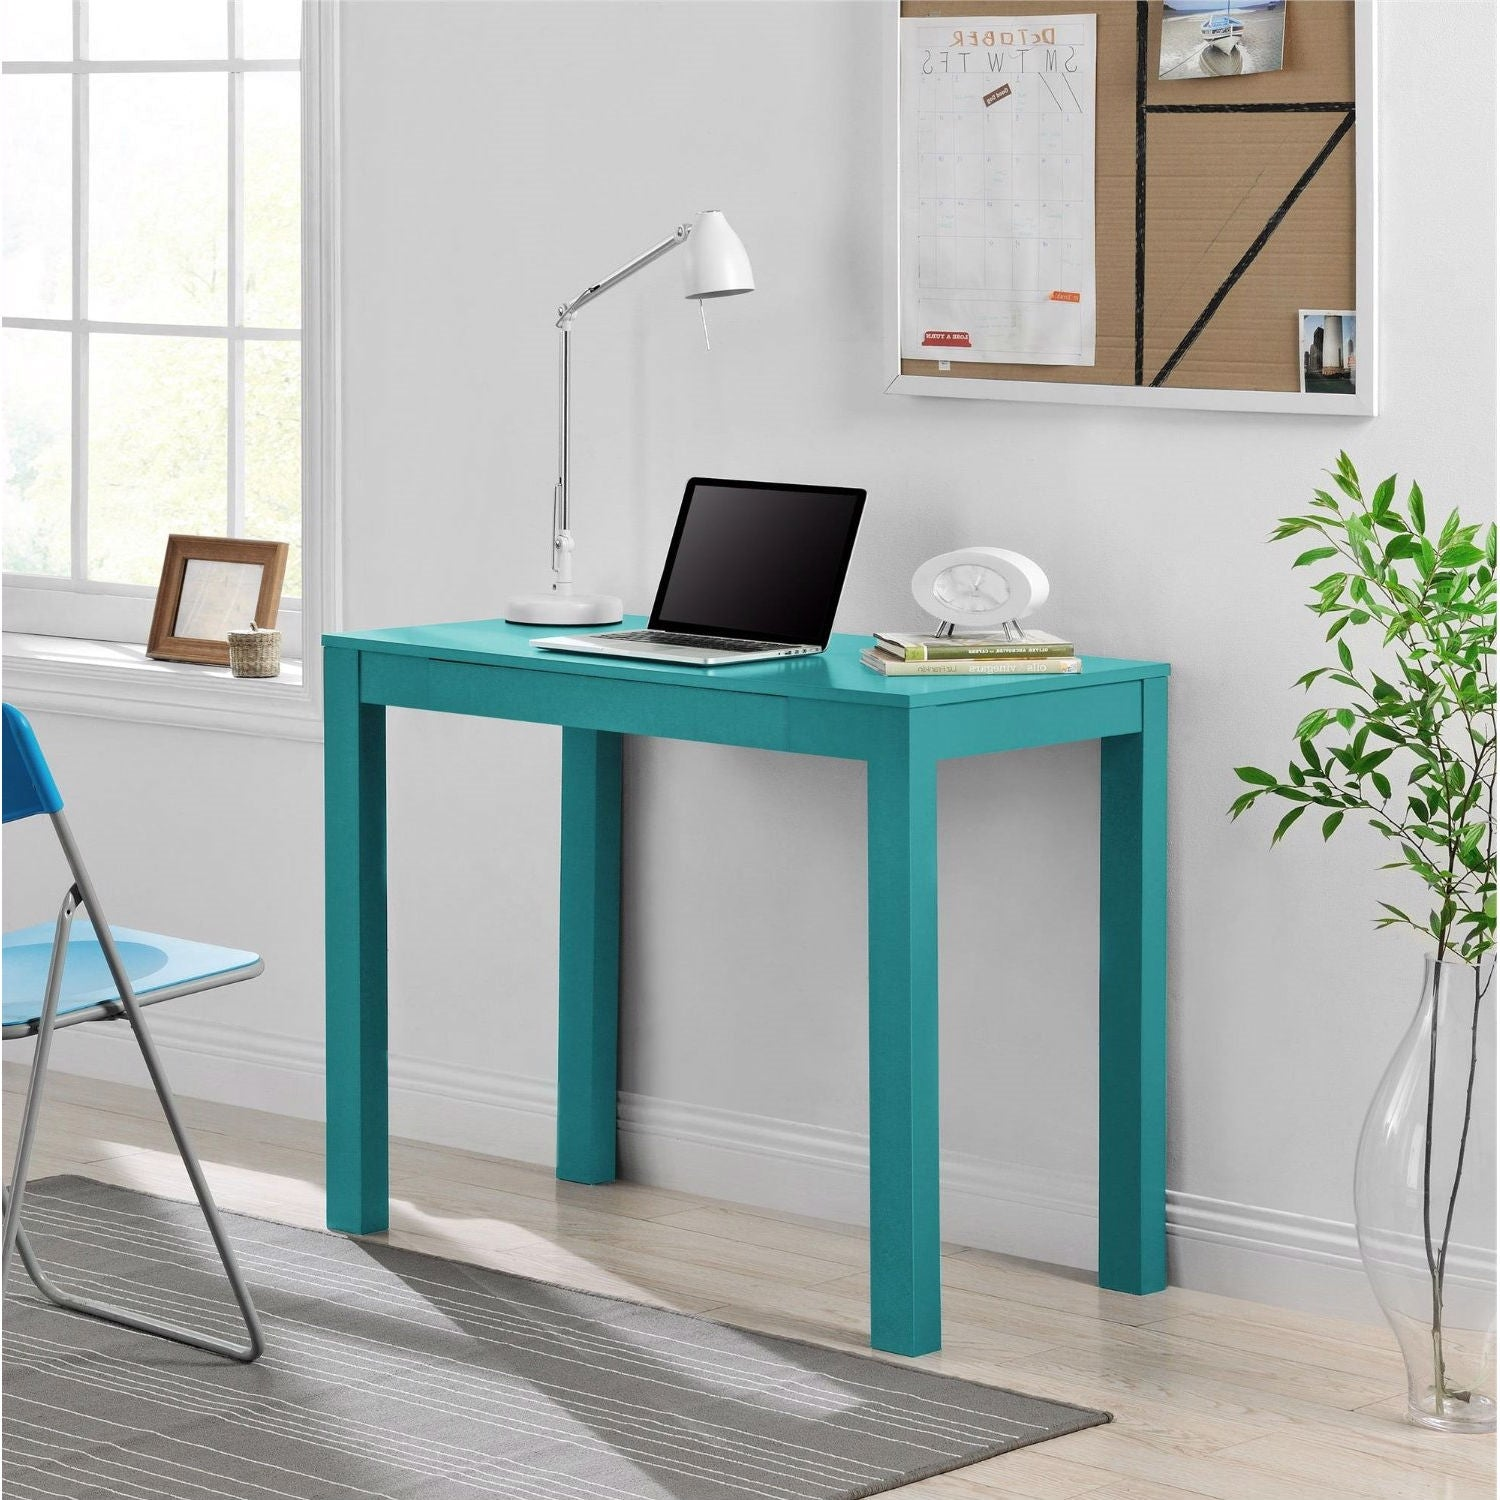 Teal Green Home Office Laptop Desk Writing Table with Drawer